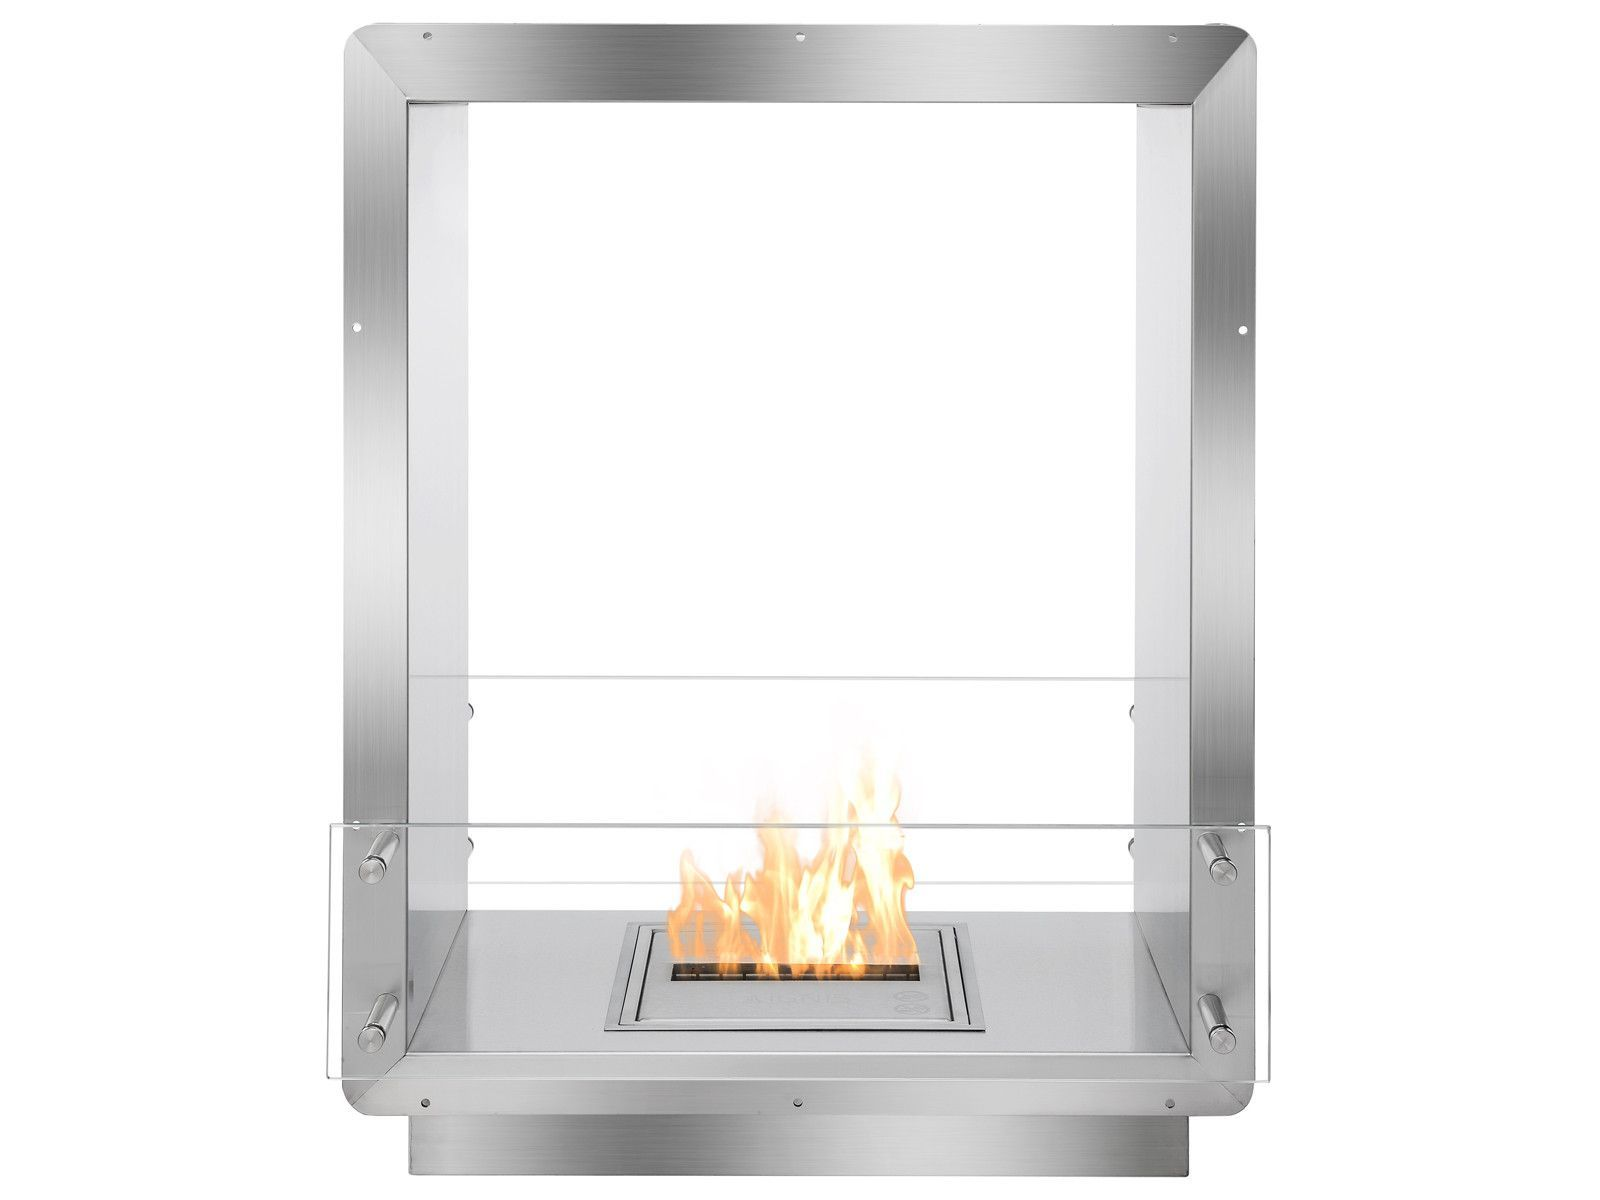 Stainless Steel Fireplace Insert Best Of Fireplace Insert Fb1212 D Products